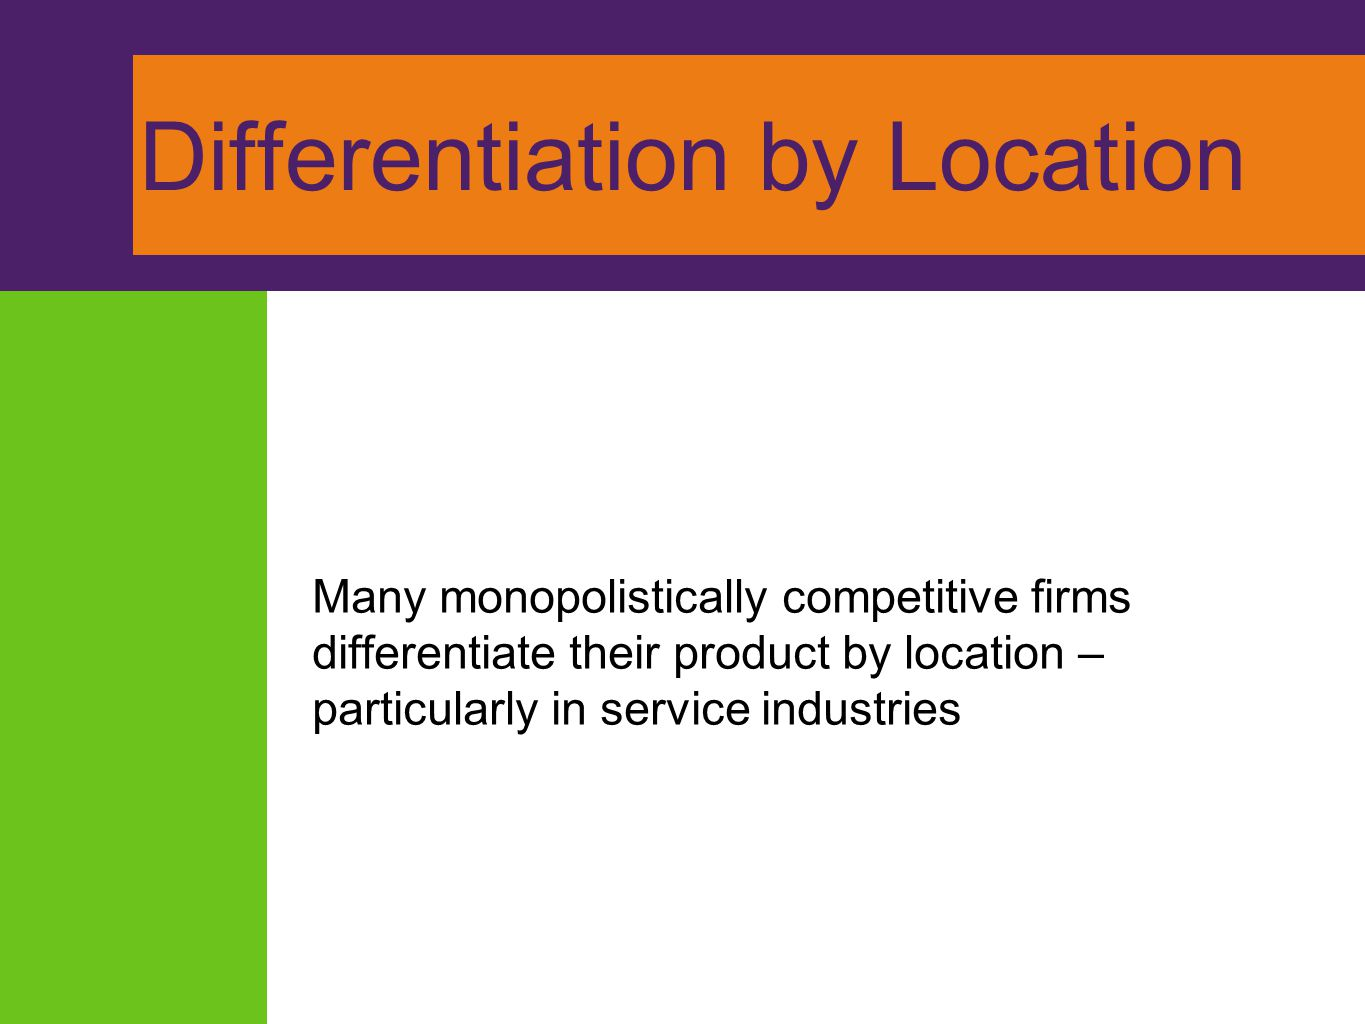 Differentiation by Location